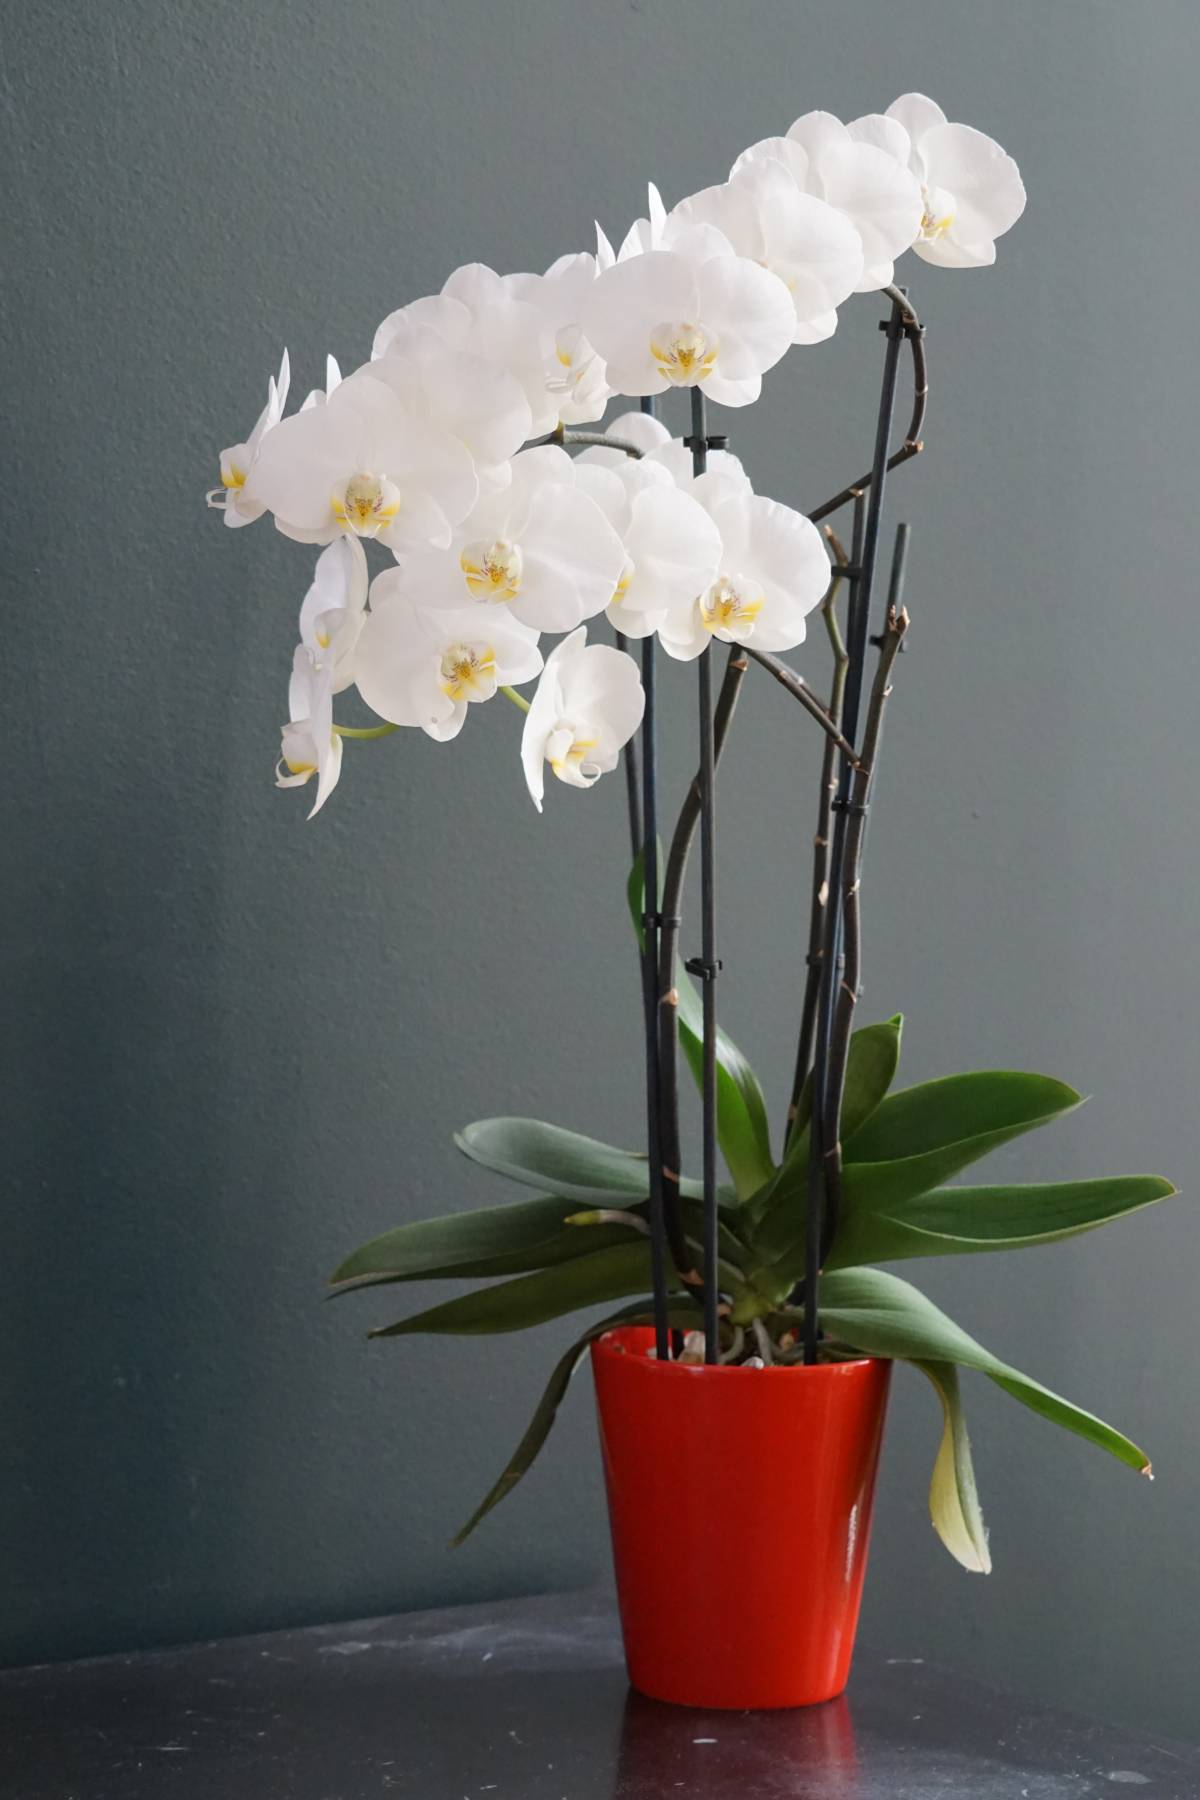 White-flowered Phalaenopsis orchid in a red pot.